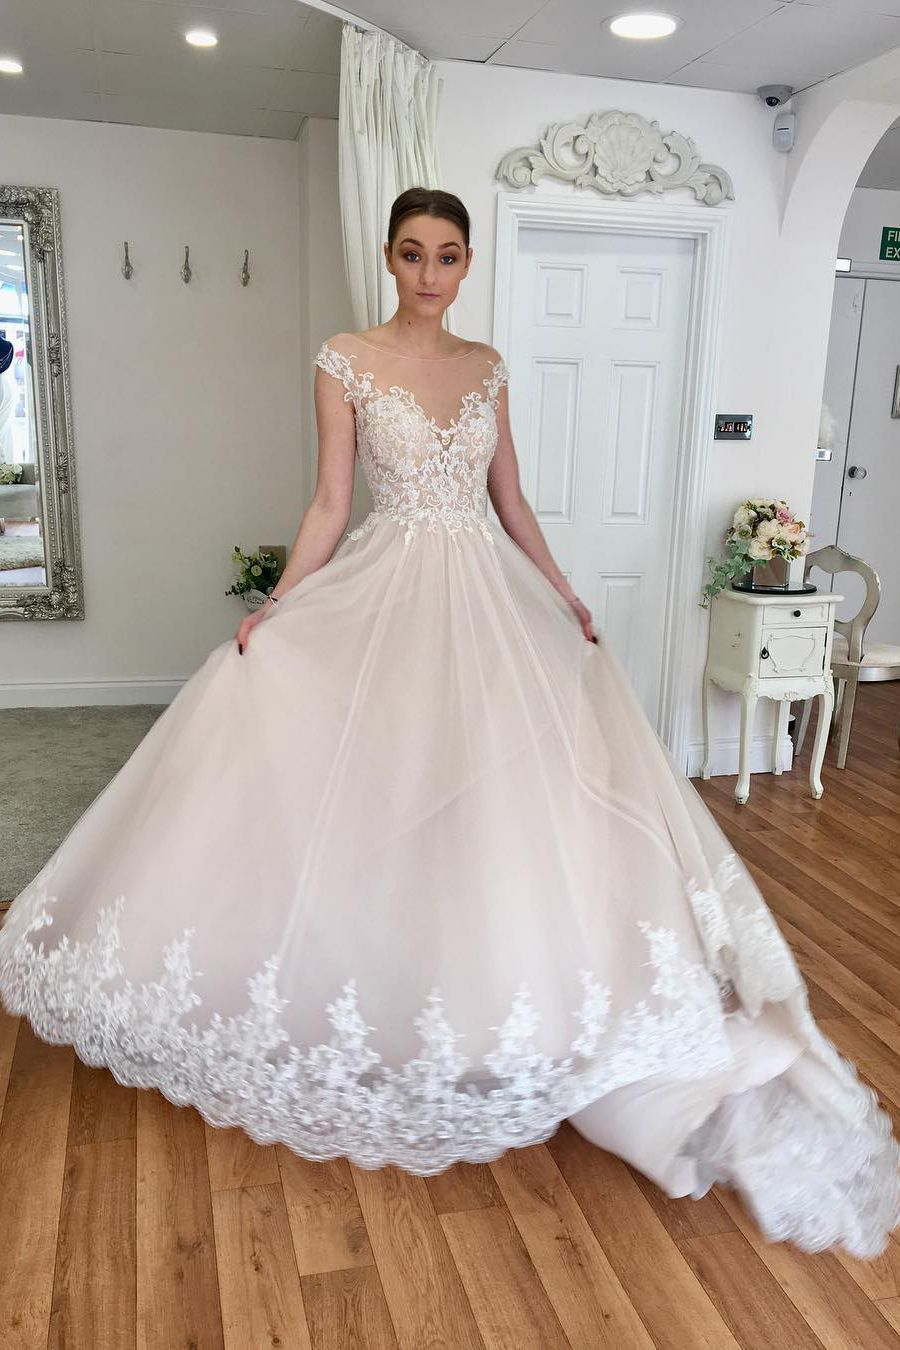 Ivory long wedding dress with cap sleeves